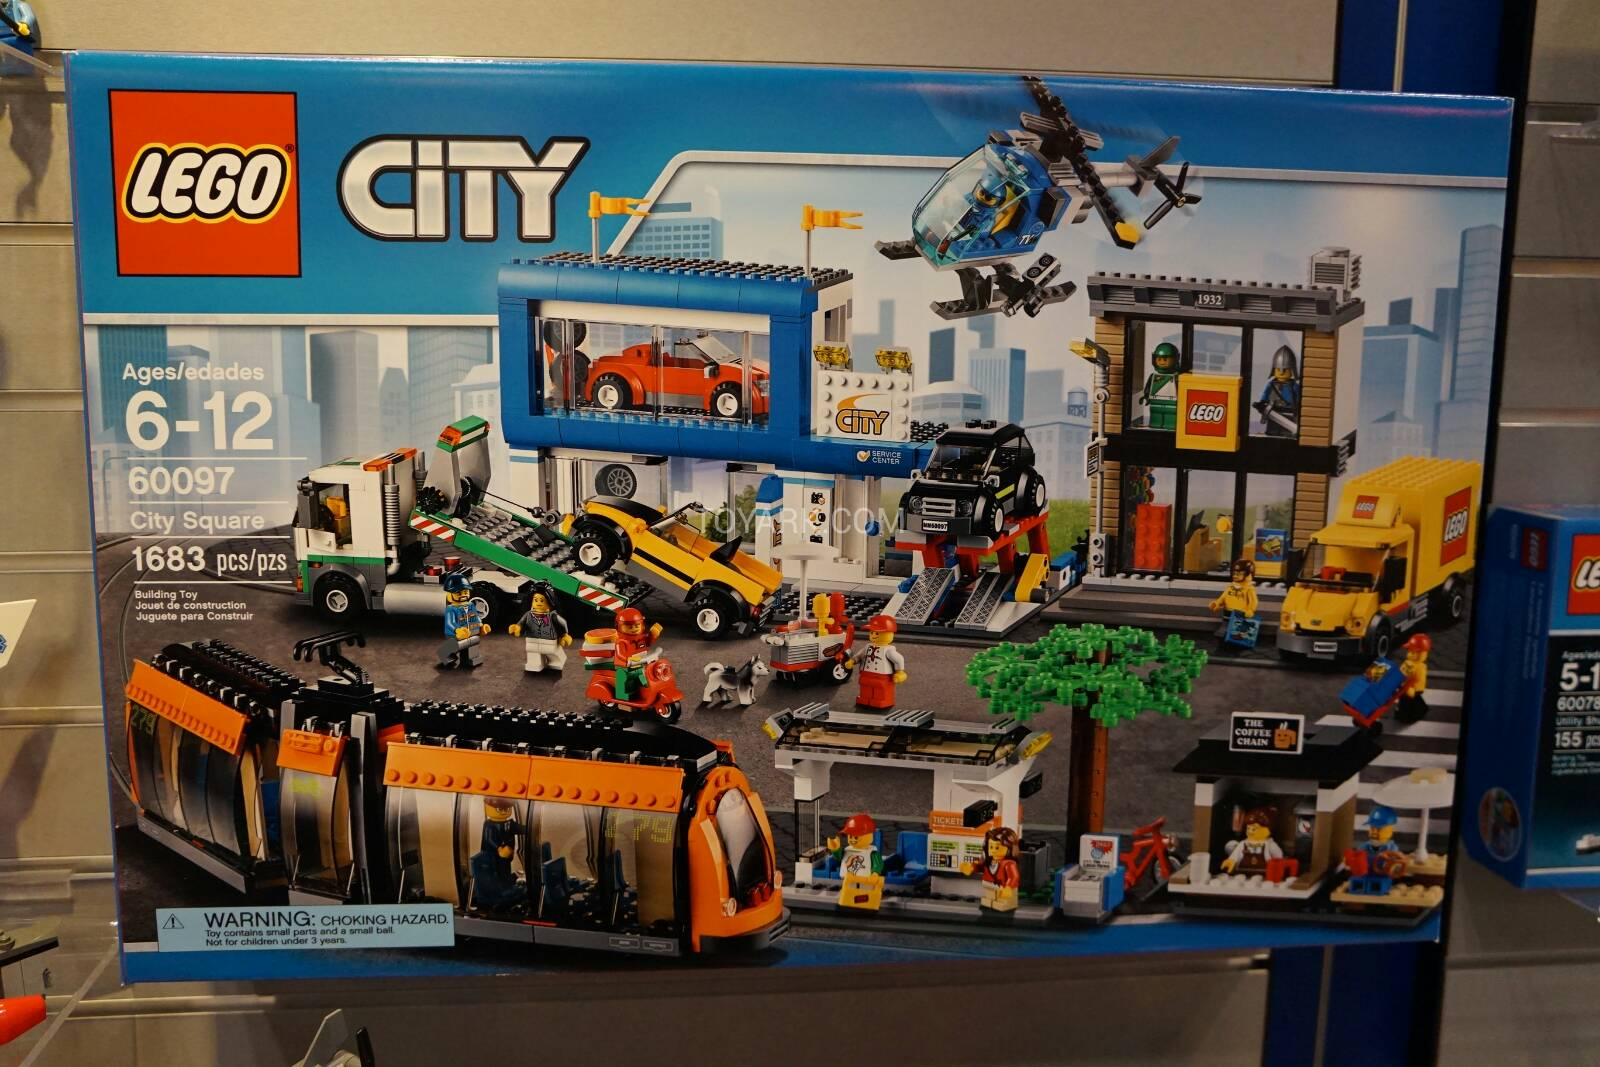 lego city sets at toy fair 2015 the toyark news. Black Bedroom Furniture Sets. Home Design Ideas